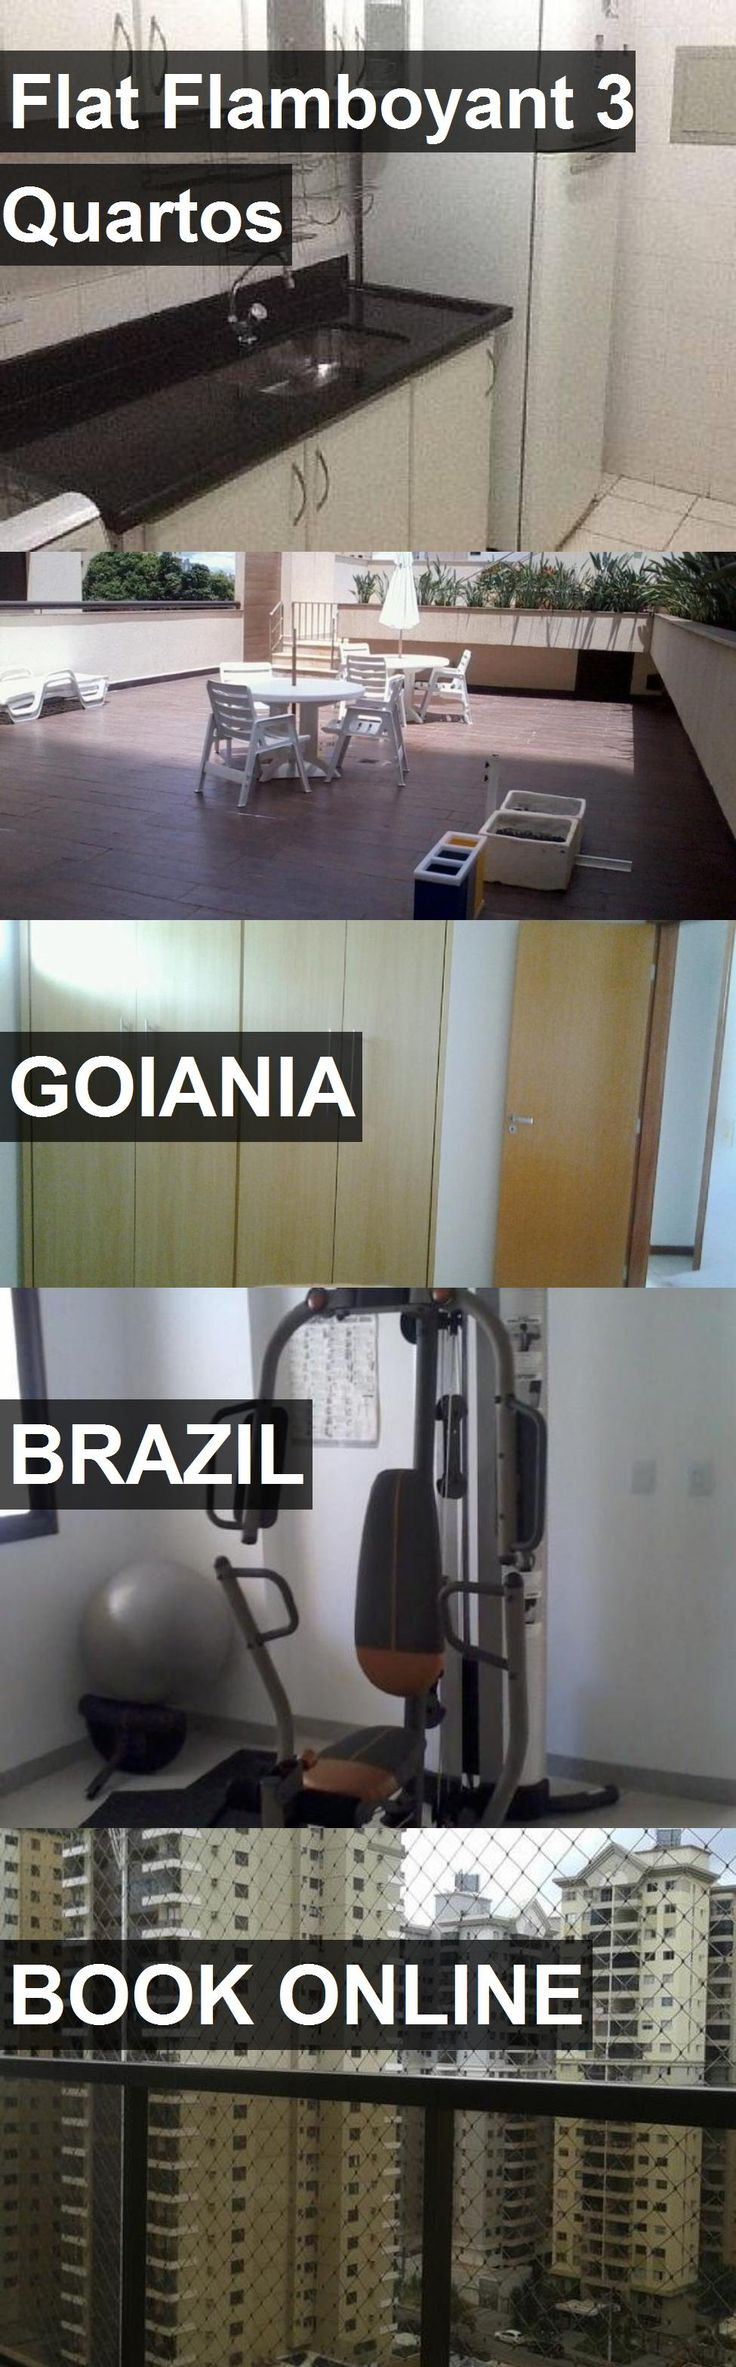 Hotel Flat Flamboyant 3 Quartos in Goiania, Brazil. For more information, photos, reviews and best prices please follow the link. #Brazil #Goiania #travel #vacation #hotel